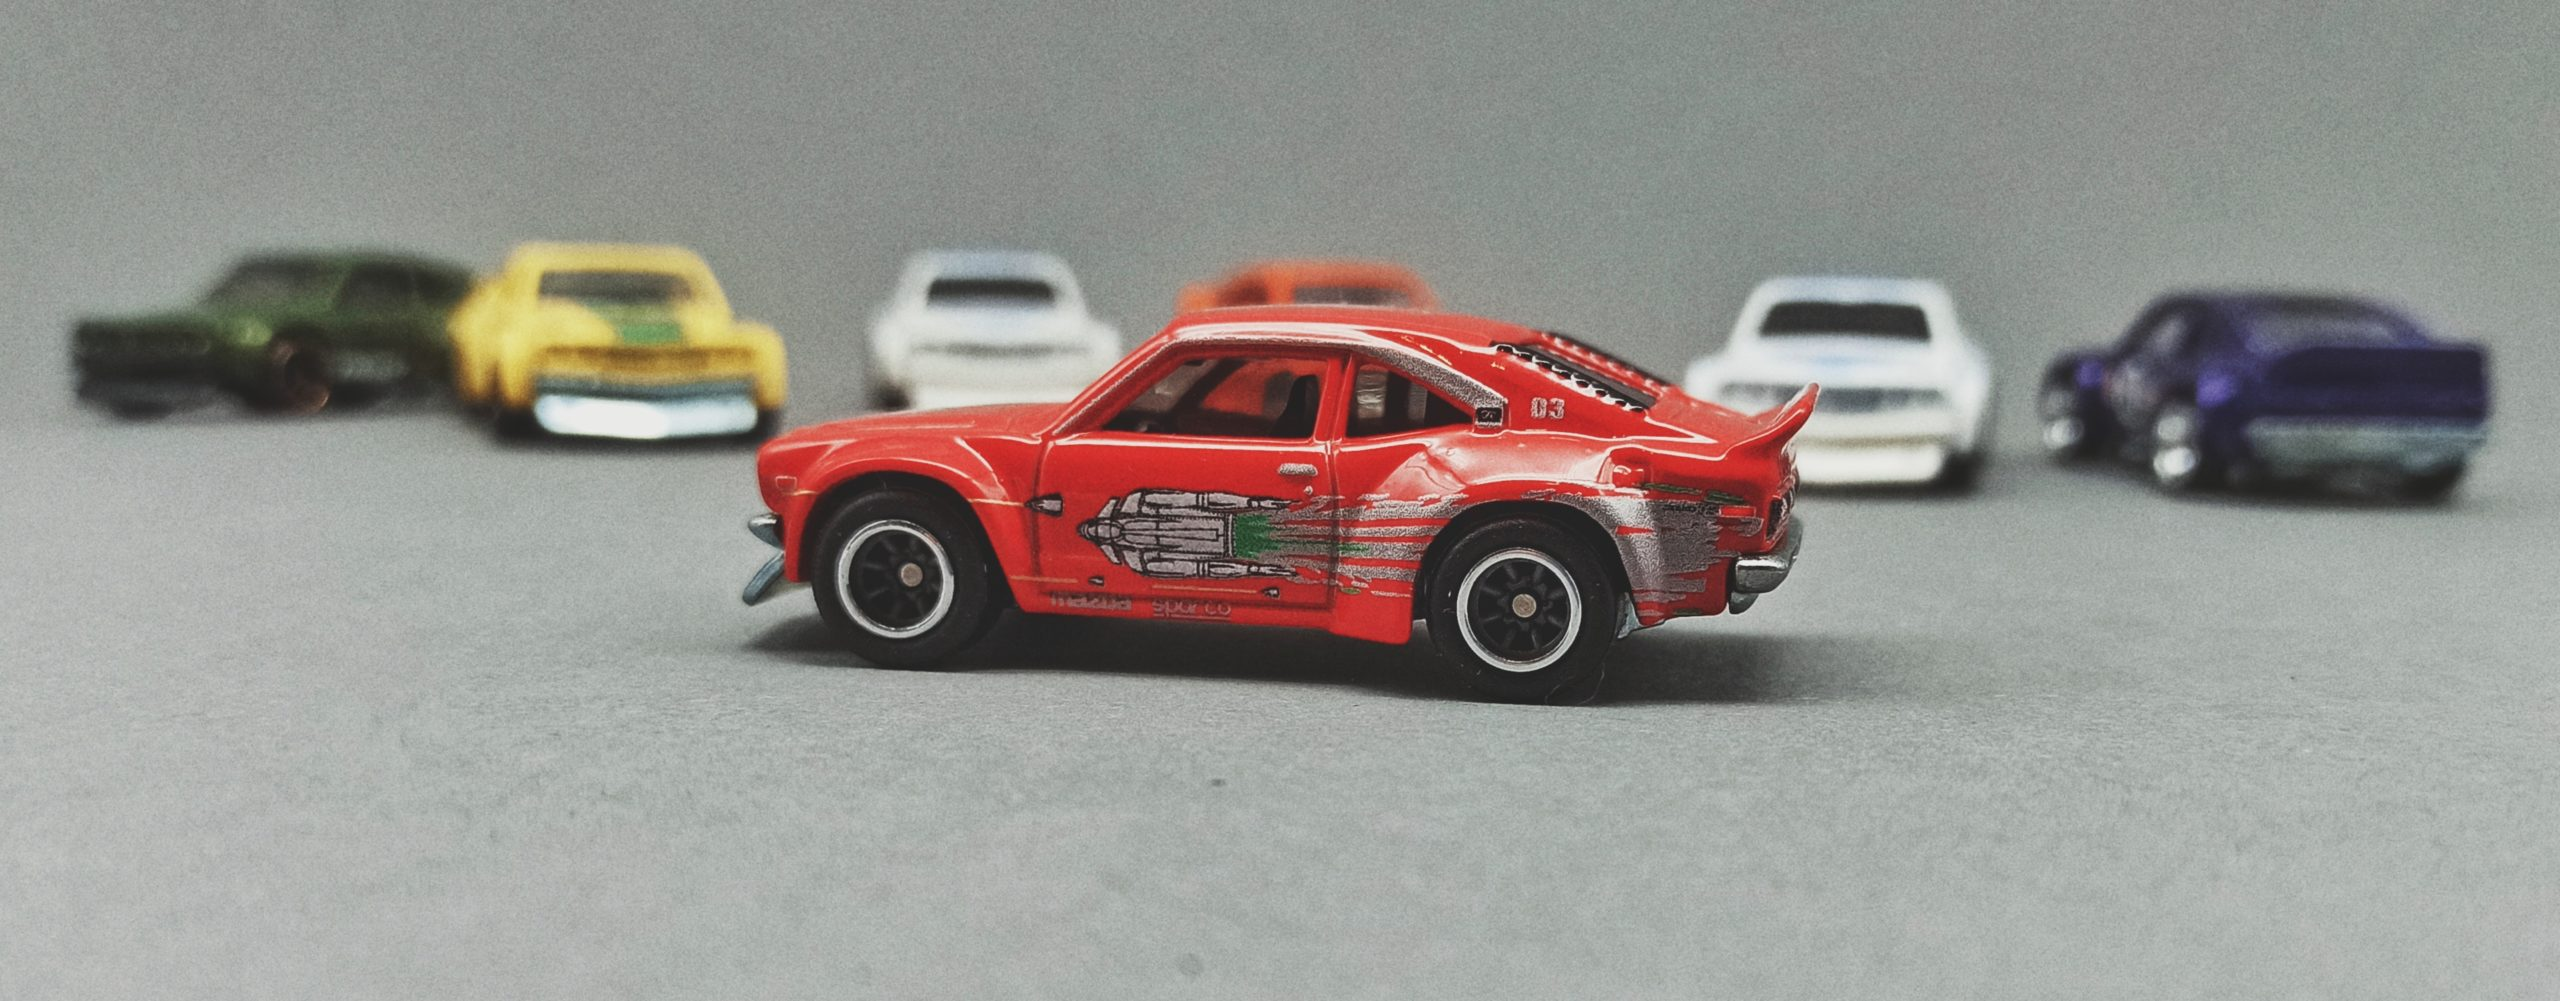 Hot Wheels Mazda RX-3 Collection 2019 Fast & Furious: Fast Rewind (1/5), red (GHH20)